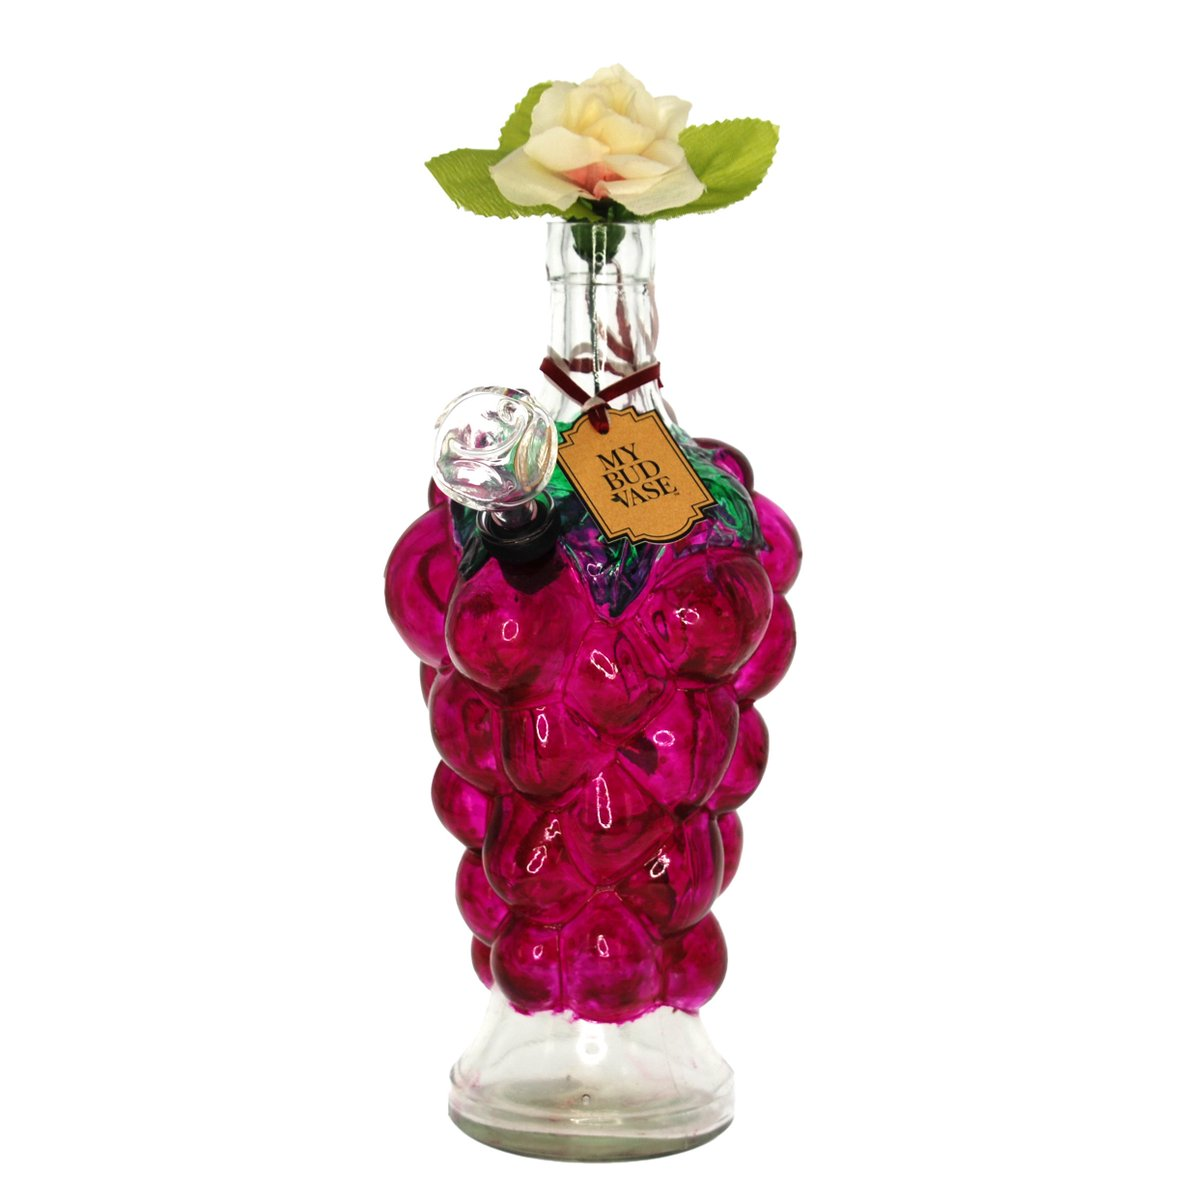 My Bud Vase (@MyBudVase) | Twitter Gl Vase For Cheap on cheap books, cheap christmas, cheap bowls, cheap earrings and necklaces,